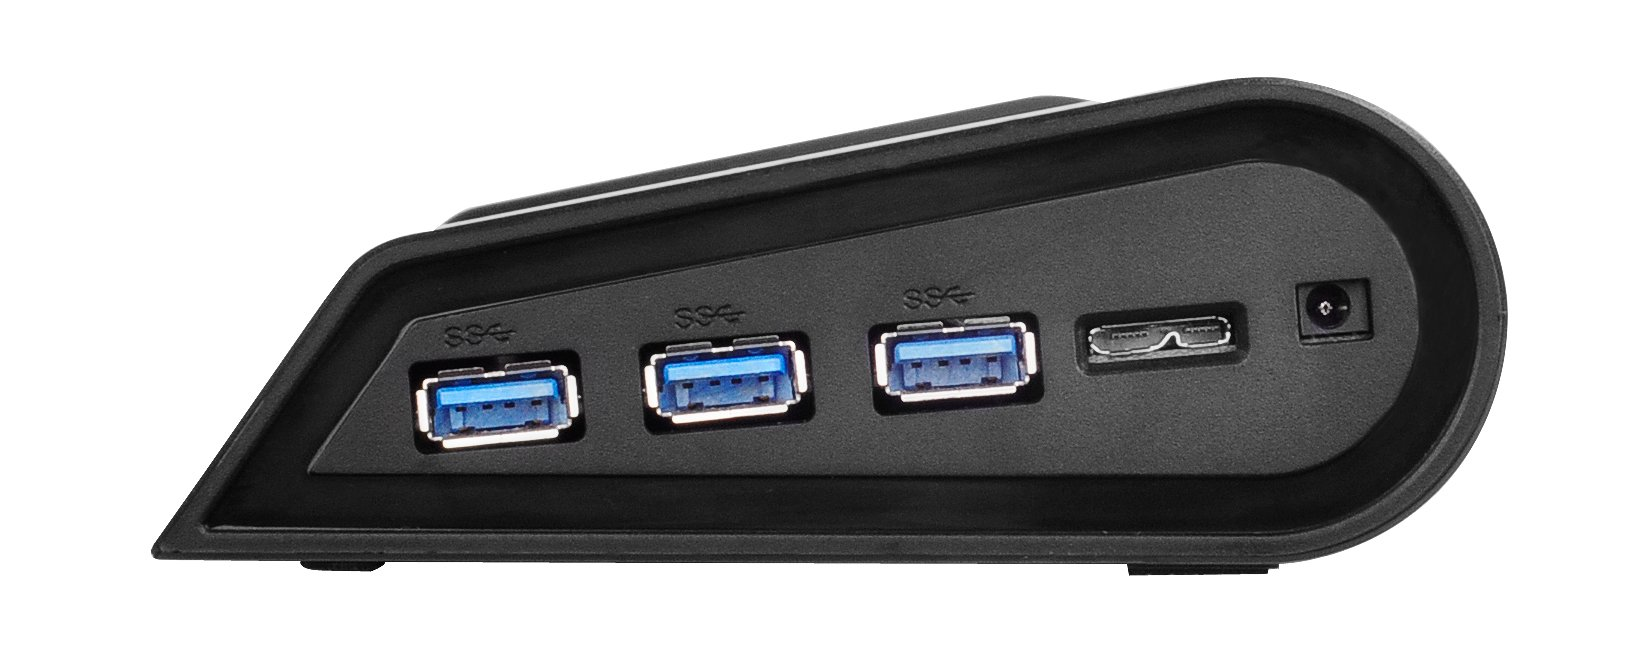 Silverstone Tek Multifunctional Laptop Cooler with Crossflow Fan, Networking Capabilities and 3x SuperSpeed USB 3.0 Ports (NB05B) by SilverStone Technology (Image #7)